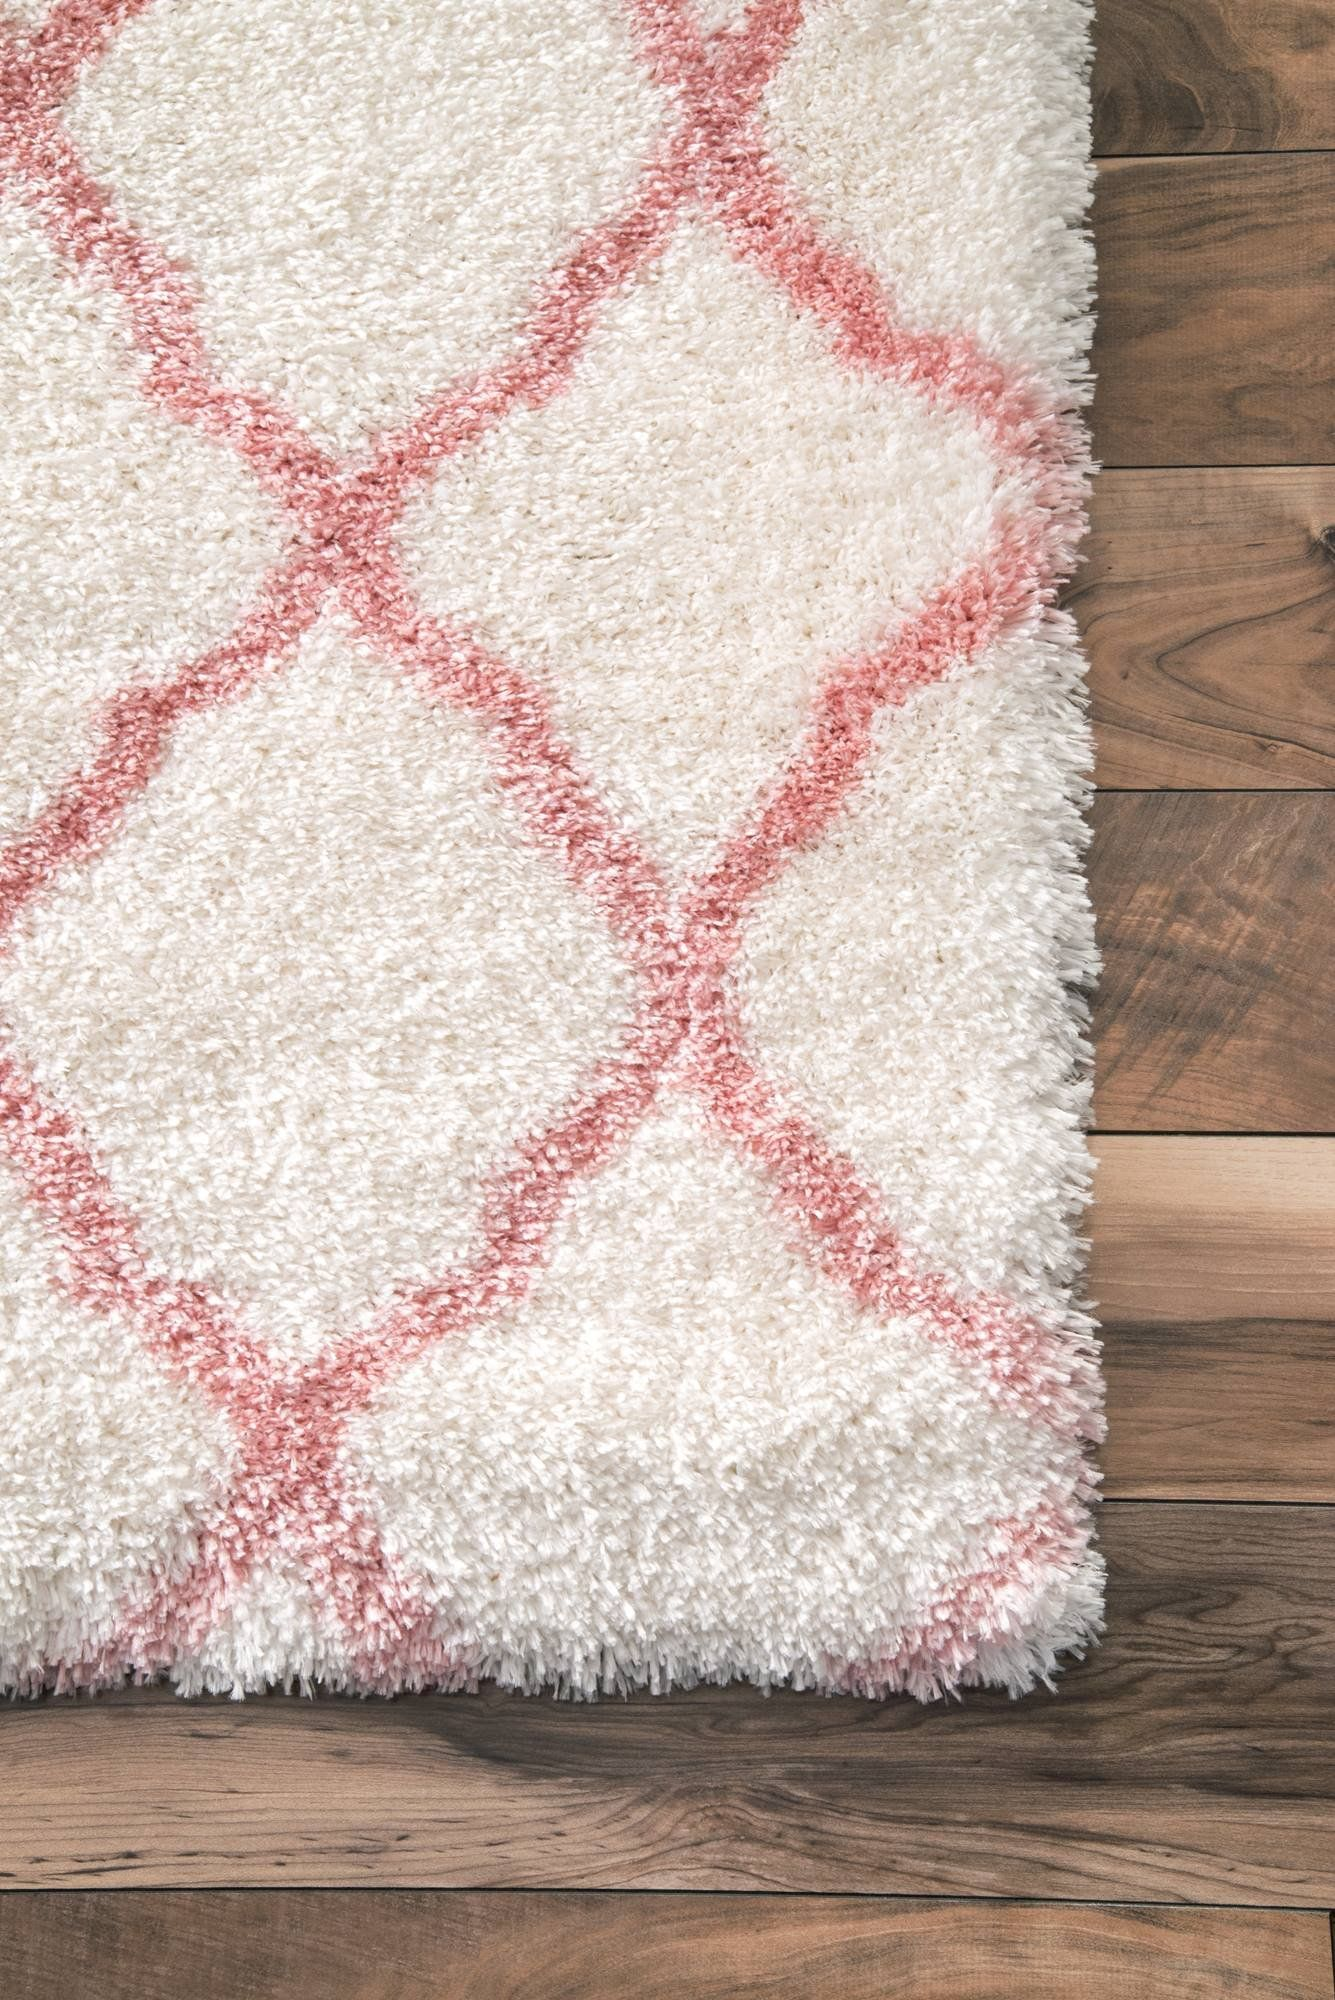 Nuloom Soft And Plush Diamond Area Rugs 8 X 10 Baby Pink Check This